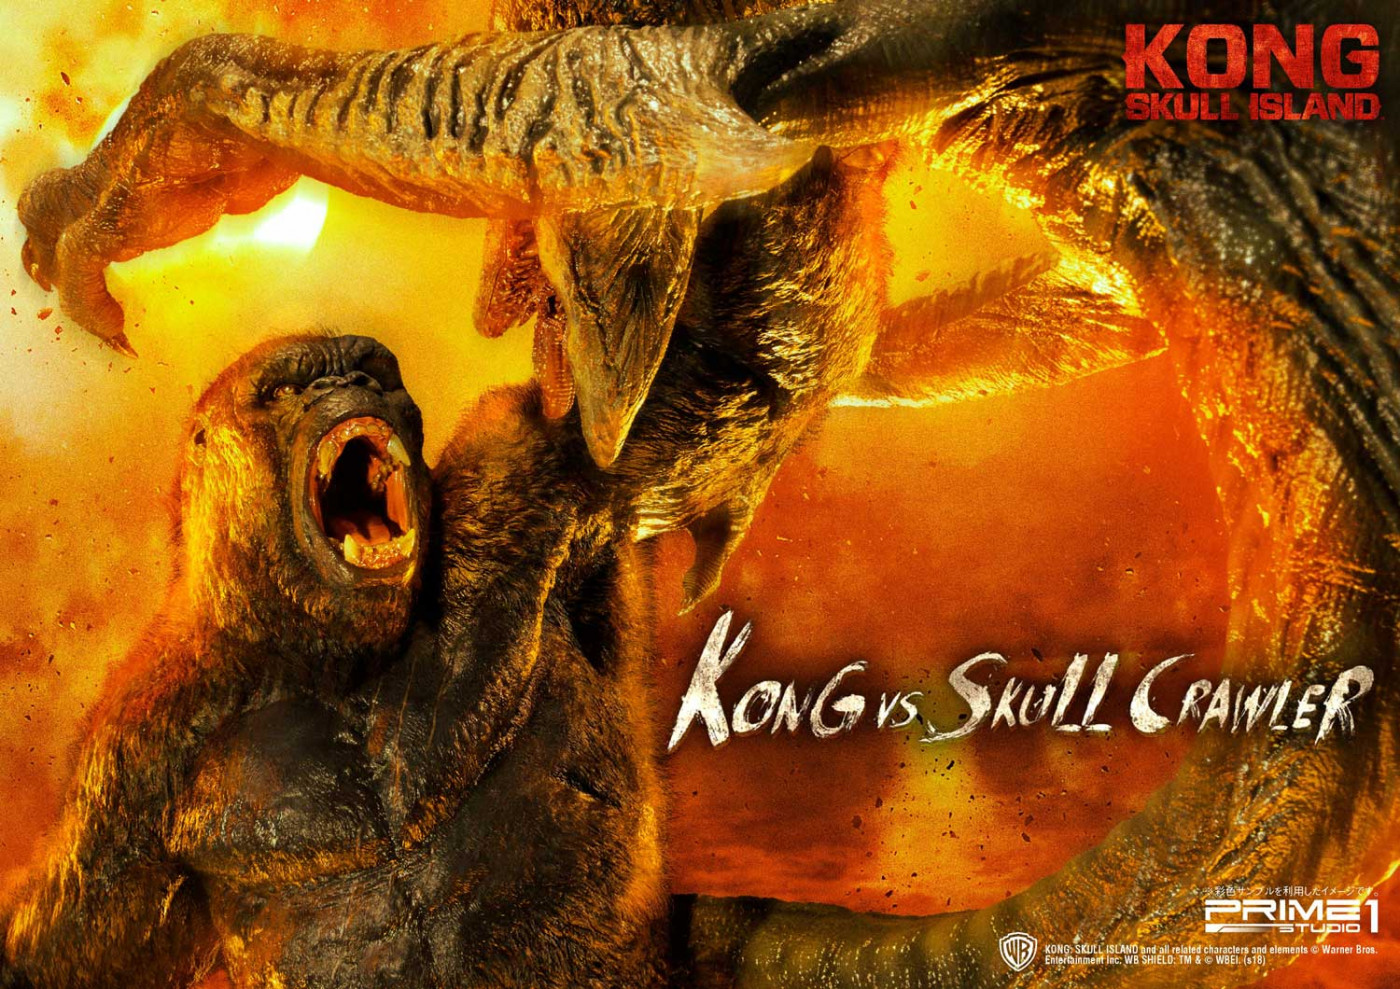 Ultimate Diorama Masterline Kong: Skull Island (Film) Kong vs Skull Crawler